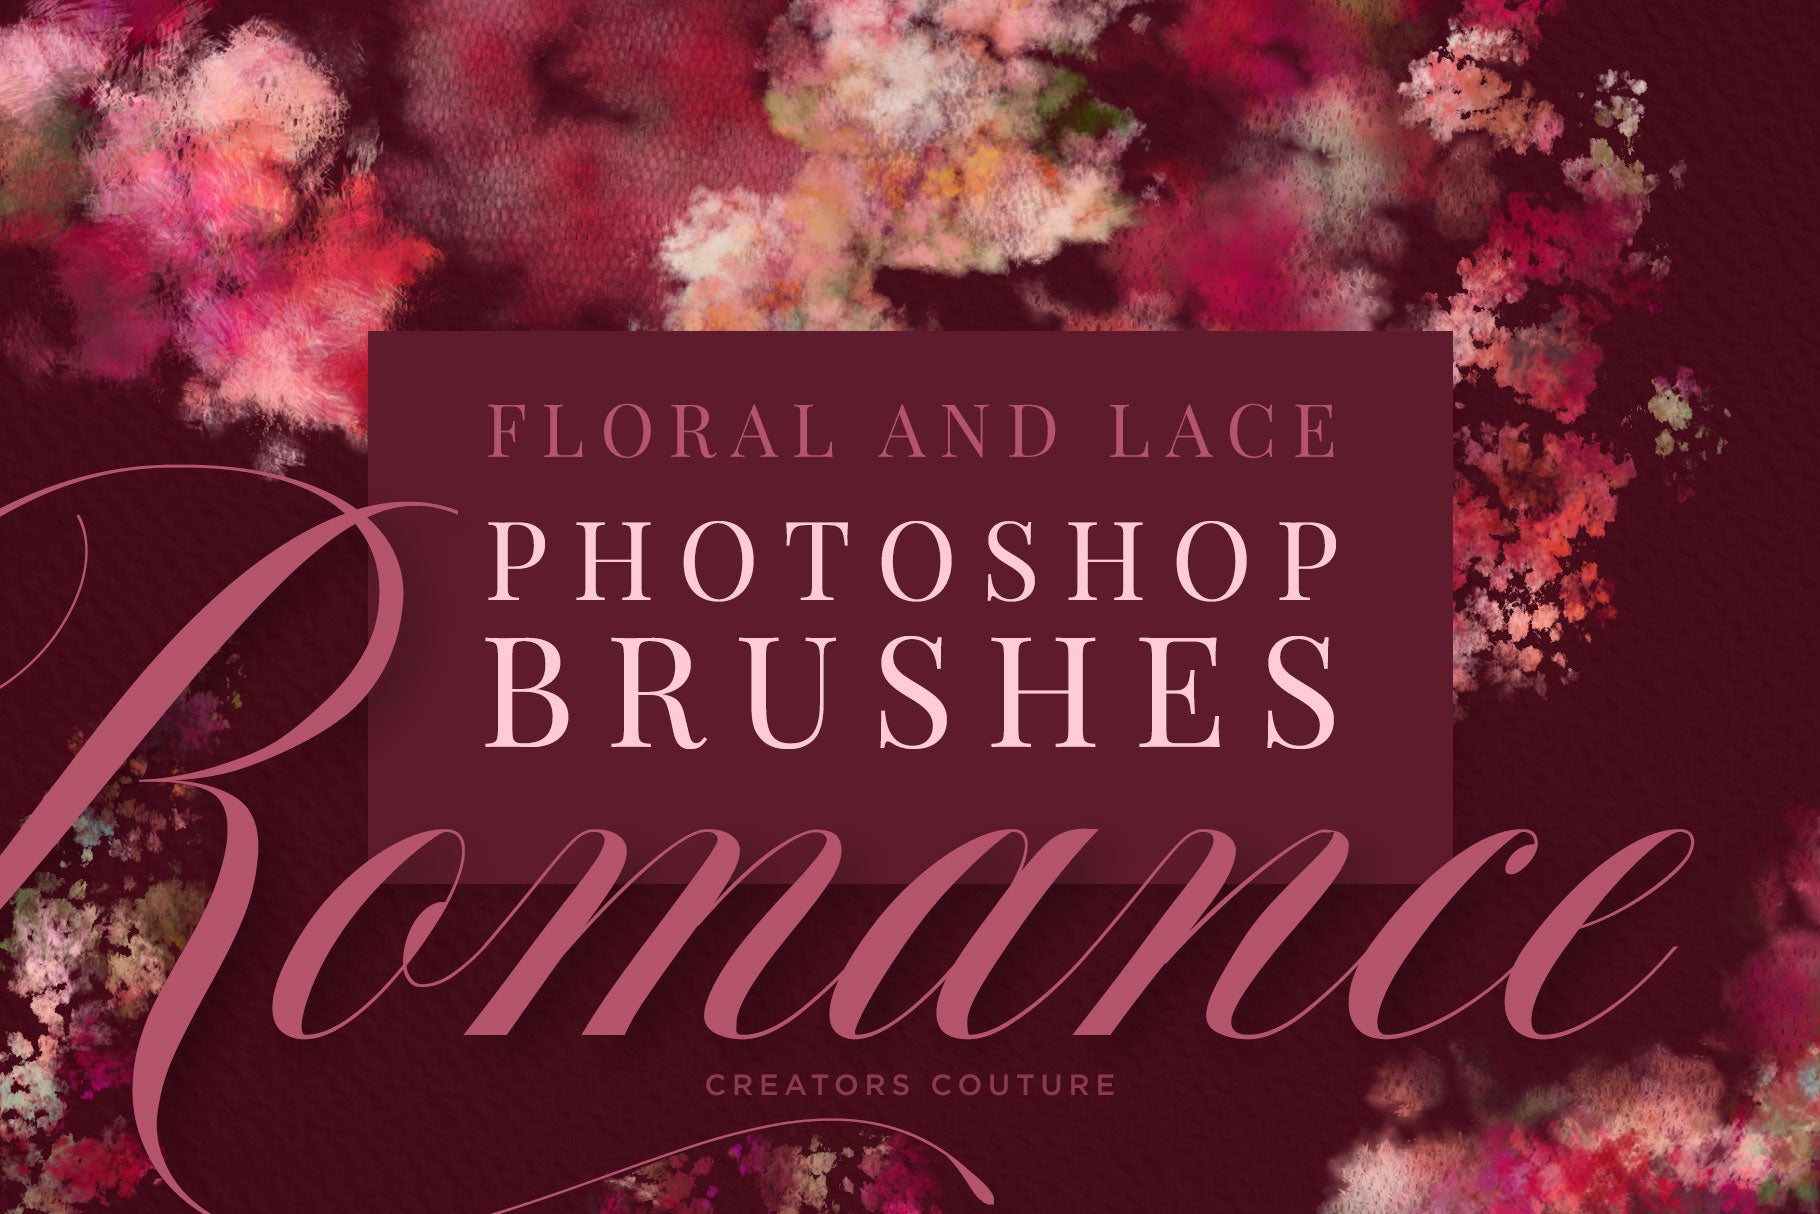 floral and lace wedding and feminine brushes for photoshop cover image